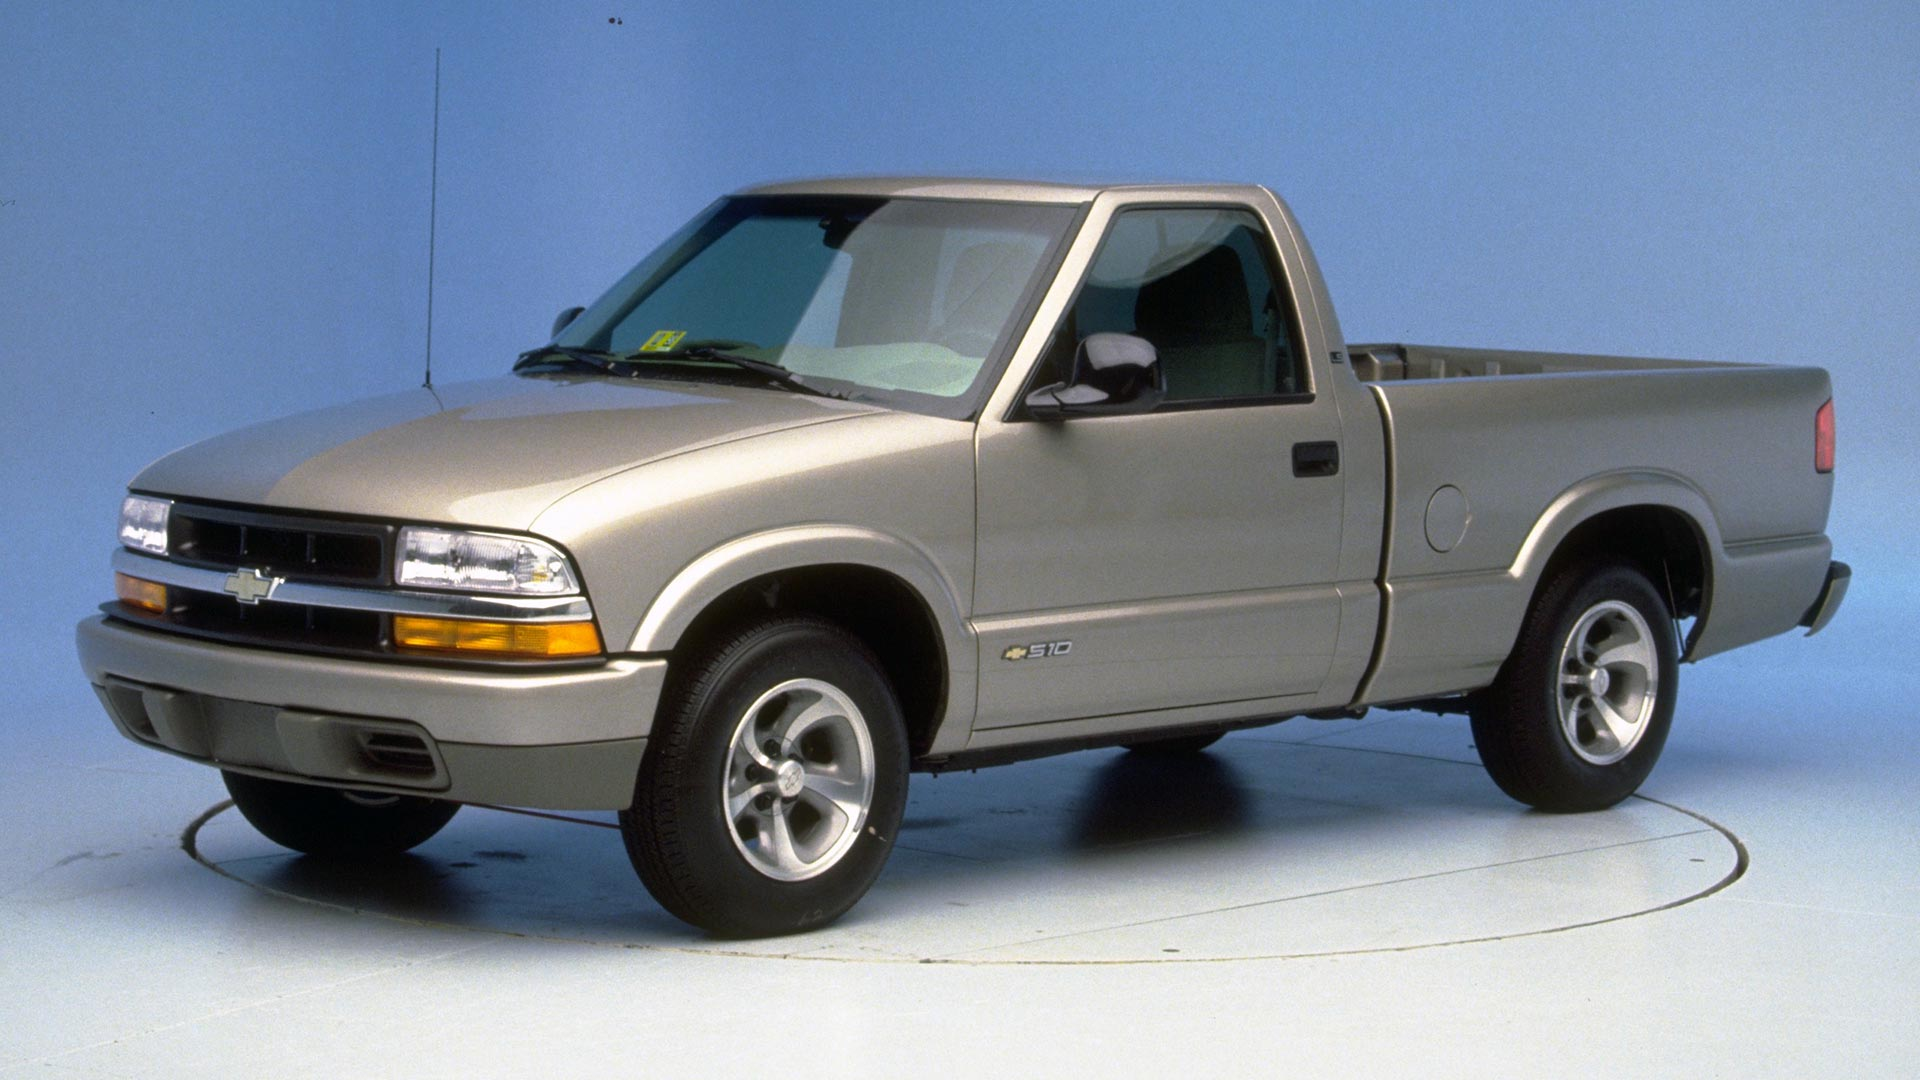 2002 Chevrolet S-10 Regular cab pickup